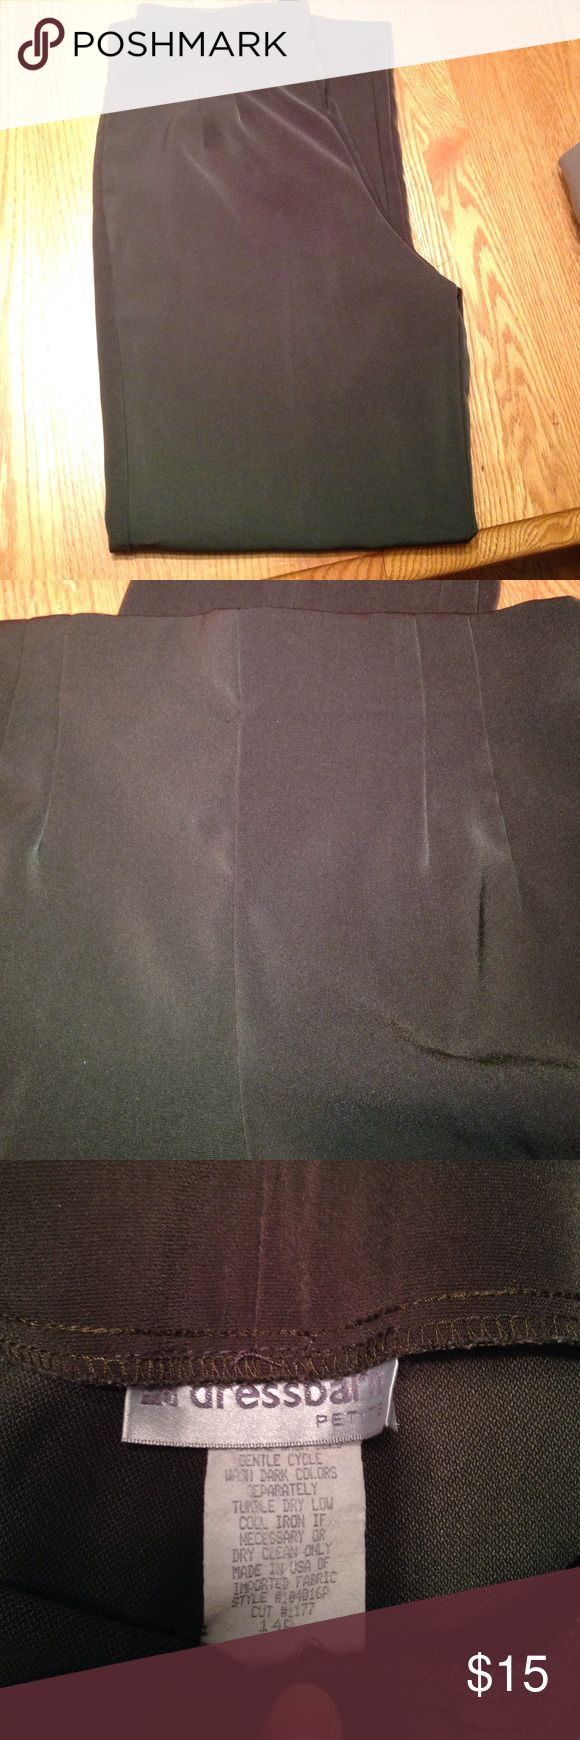 Ladies olive green slacks They don't look it but they are a beautiful olive green. Very comfy. Side hidden zipper. Dress Barn Pants Trousers